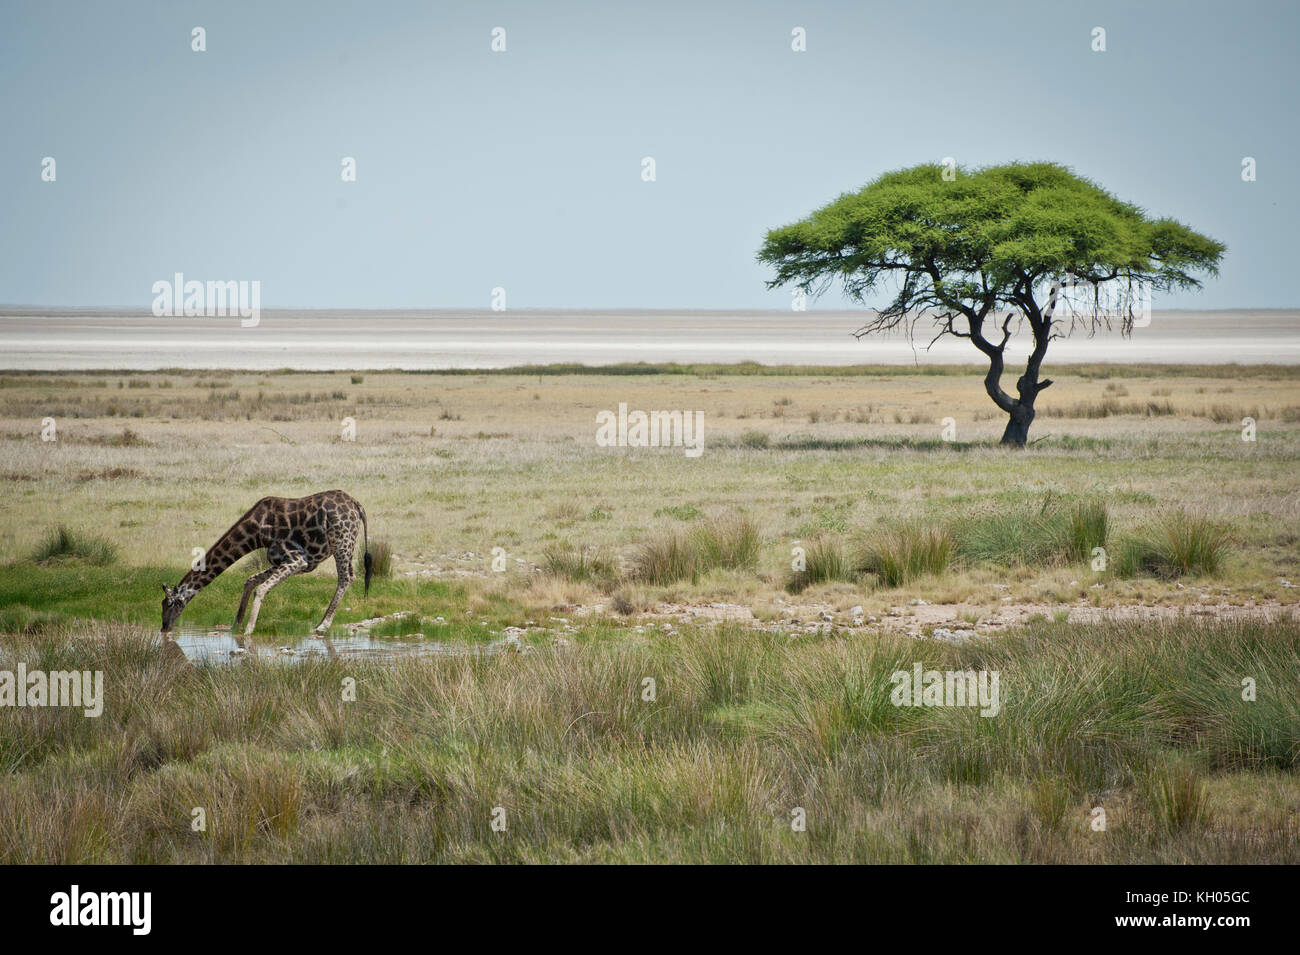 A giraffe drinking water in Etosha National Park, Namibia, March 2013. - Stock Image